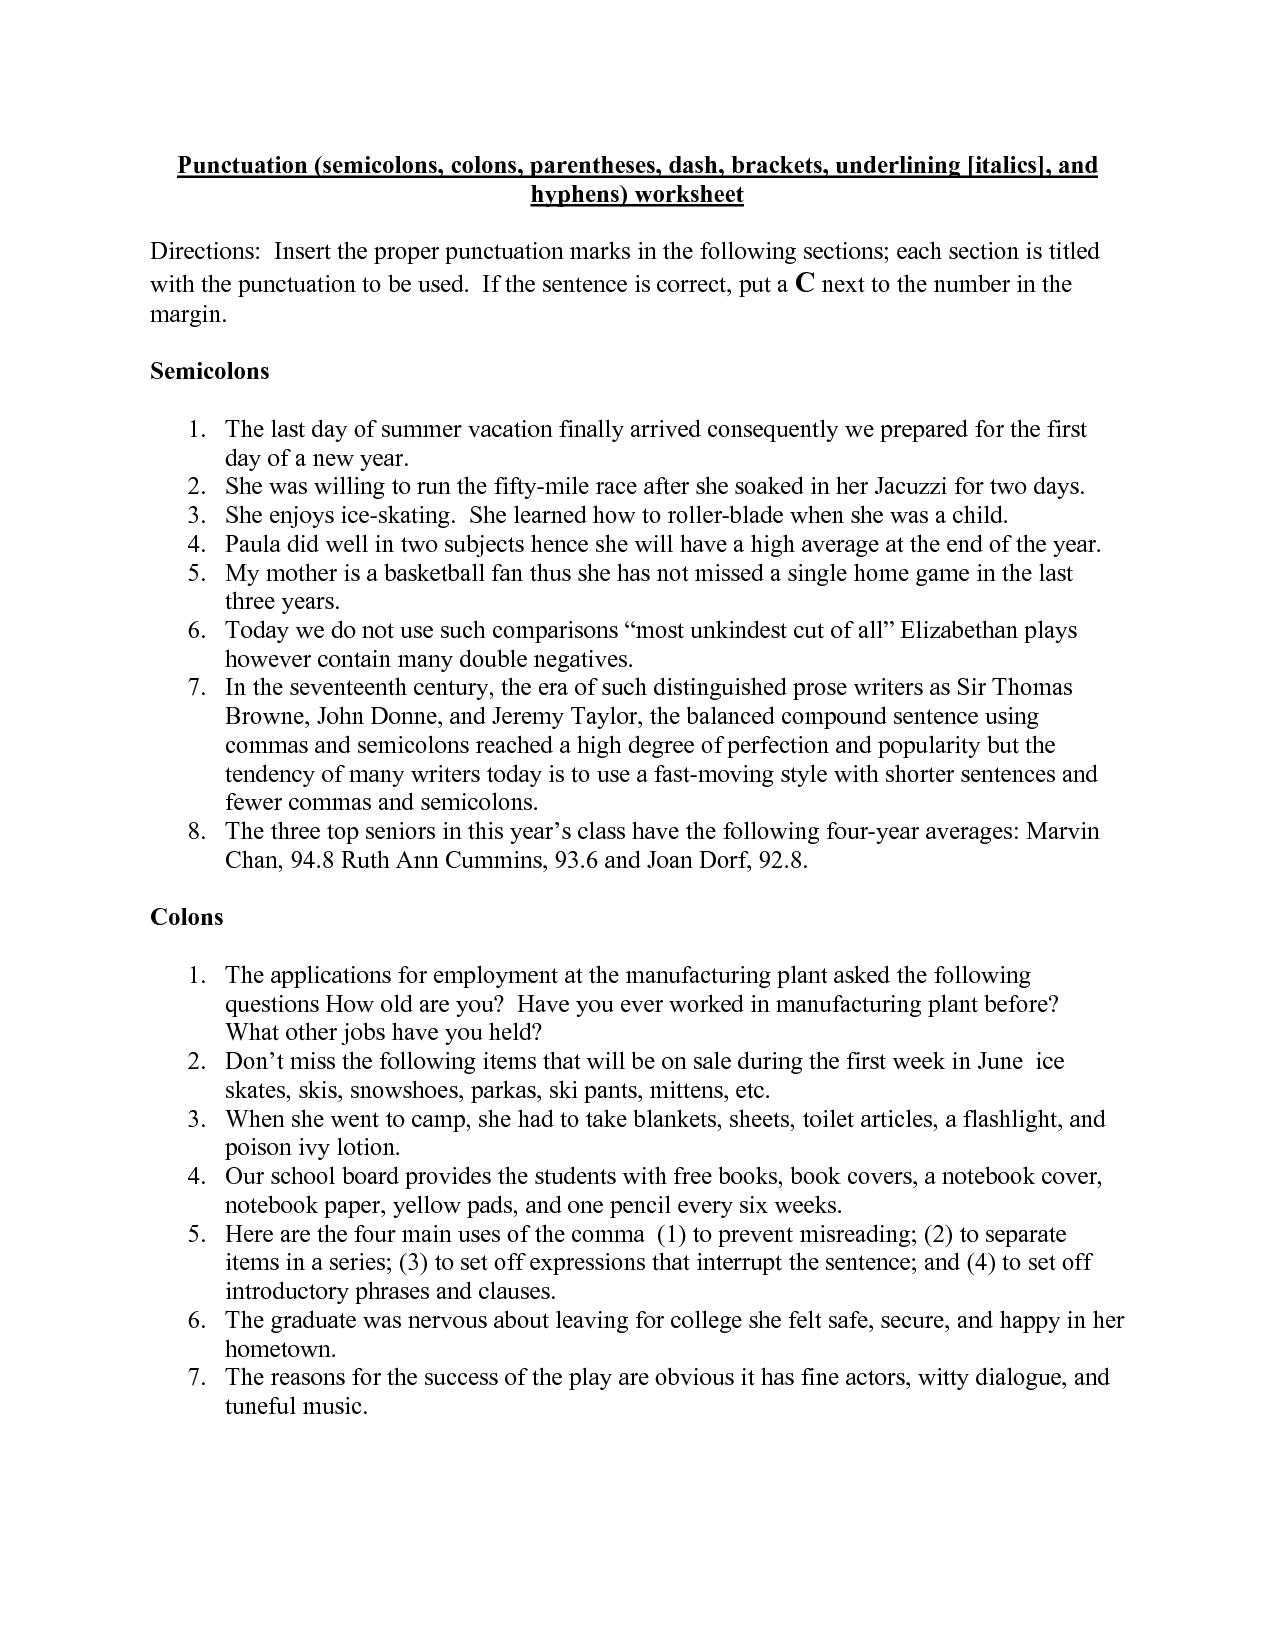 Worksheet On Using Punctuation Marks